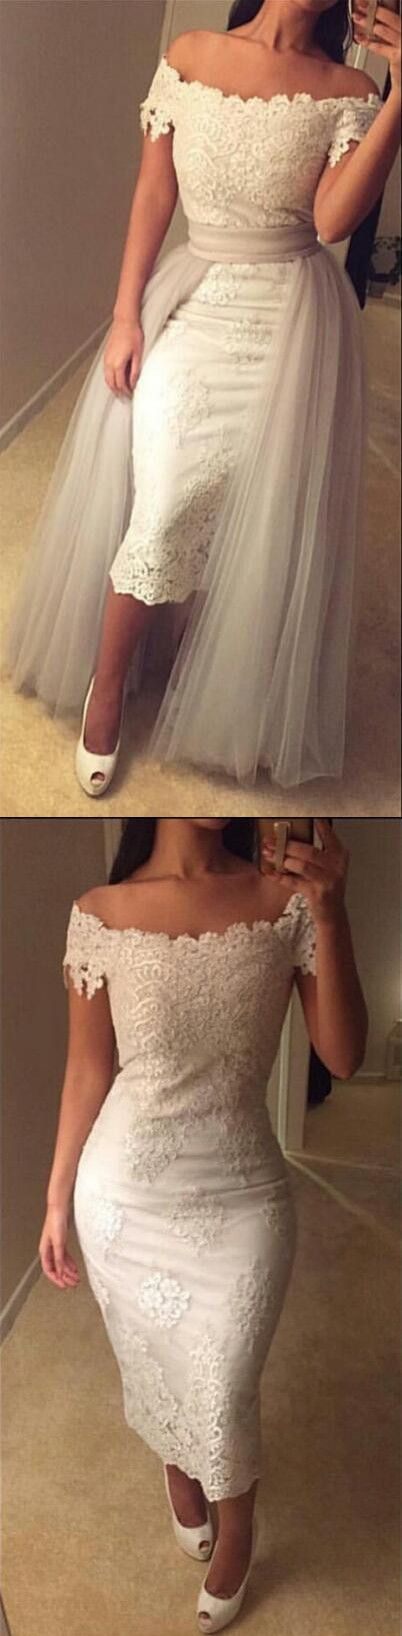 prom dress 2017,white prom dress,detachable prom dress,lace appliques prom dress,tulle over skirt prom dress,sexy evening gowns,off the shoulder prom dress